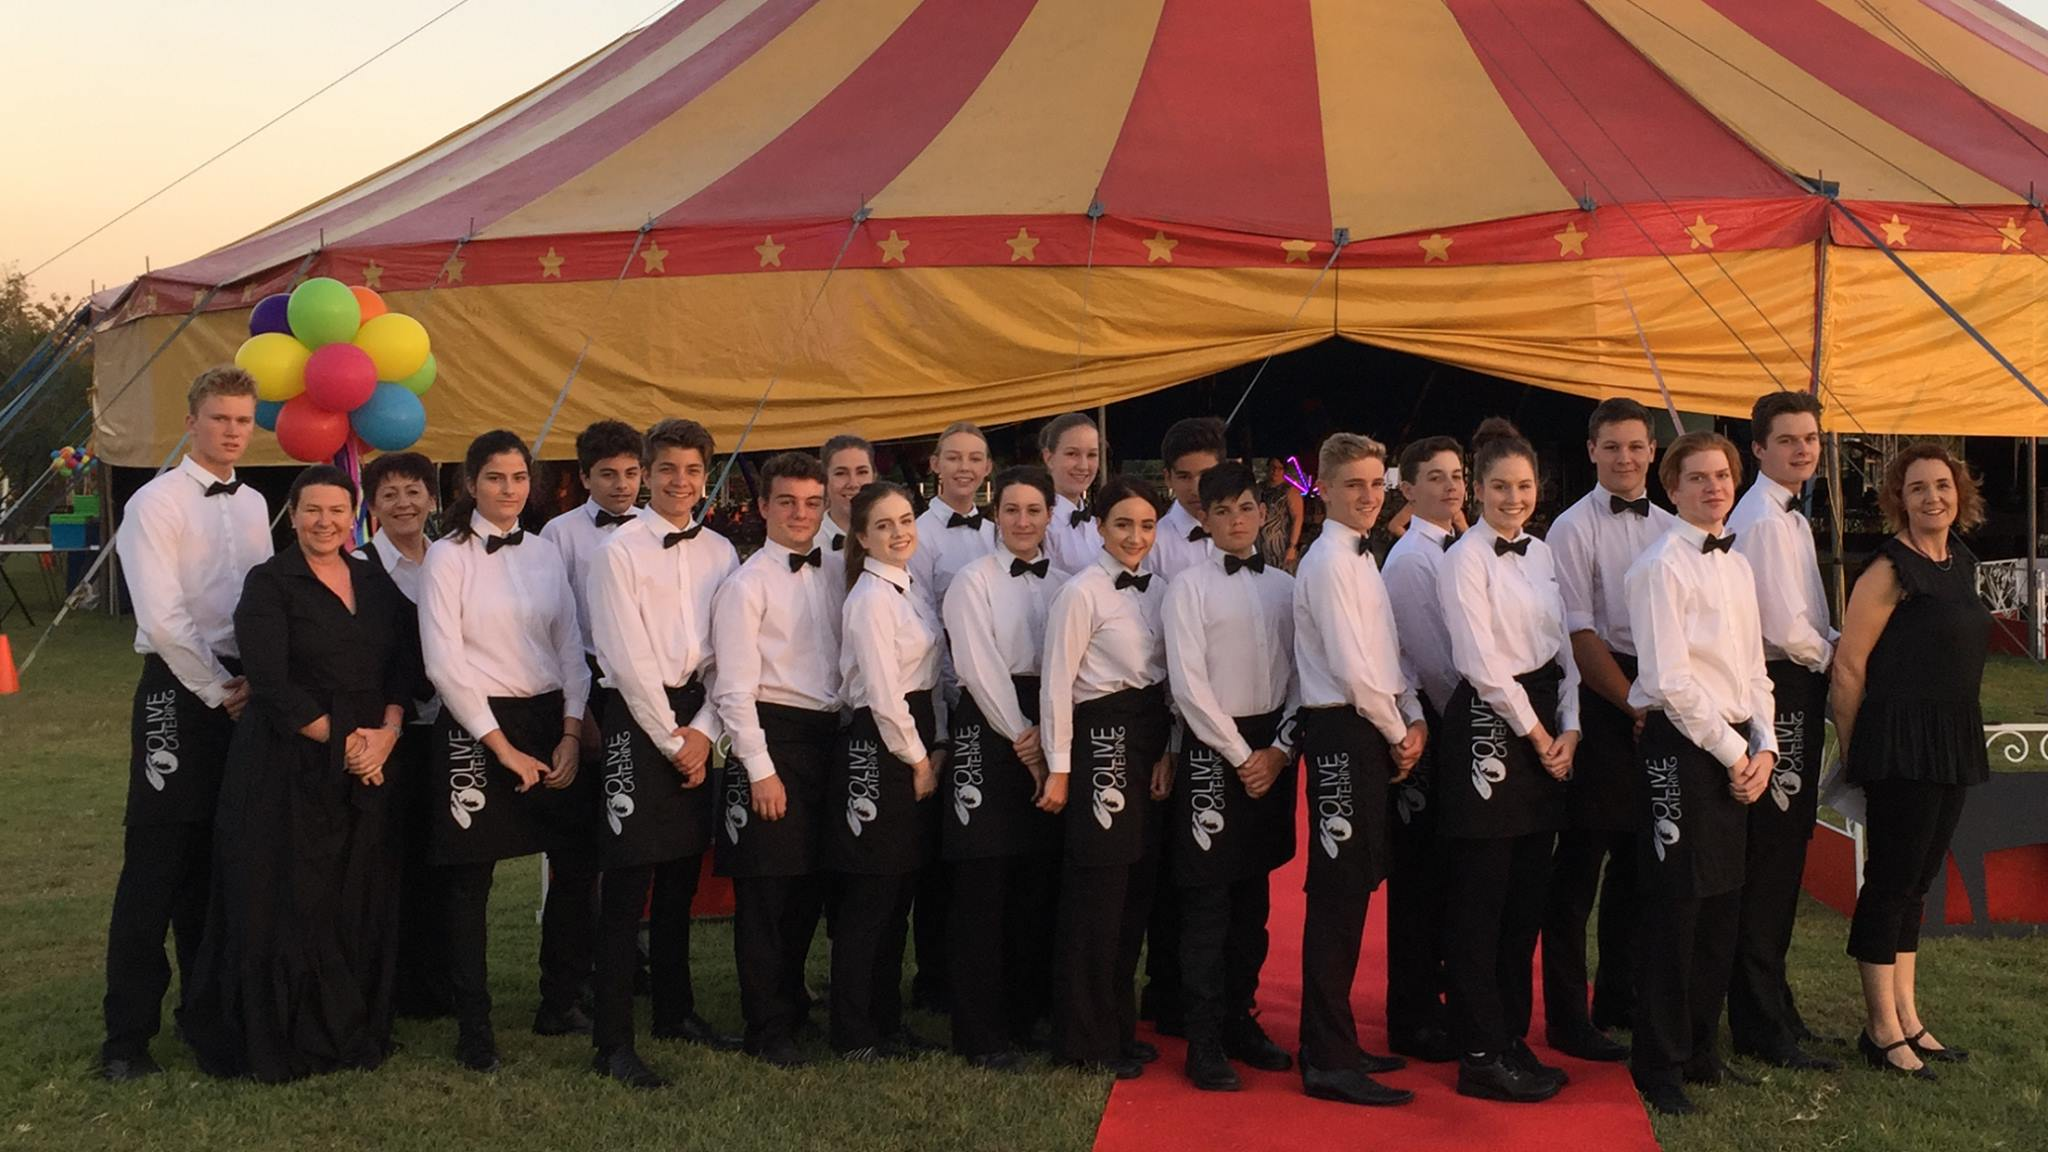 The fantastic crew of wait staff, delivering guests a great night at the 2015 Black Dog Ball.